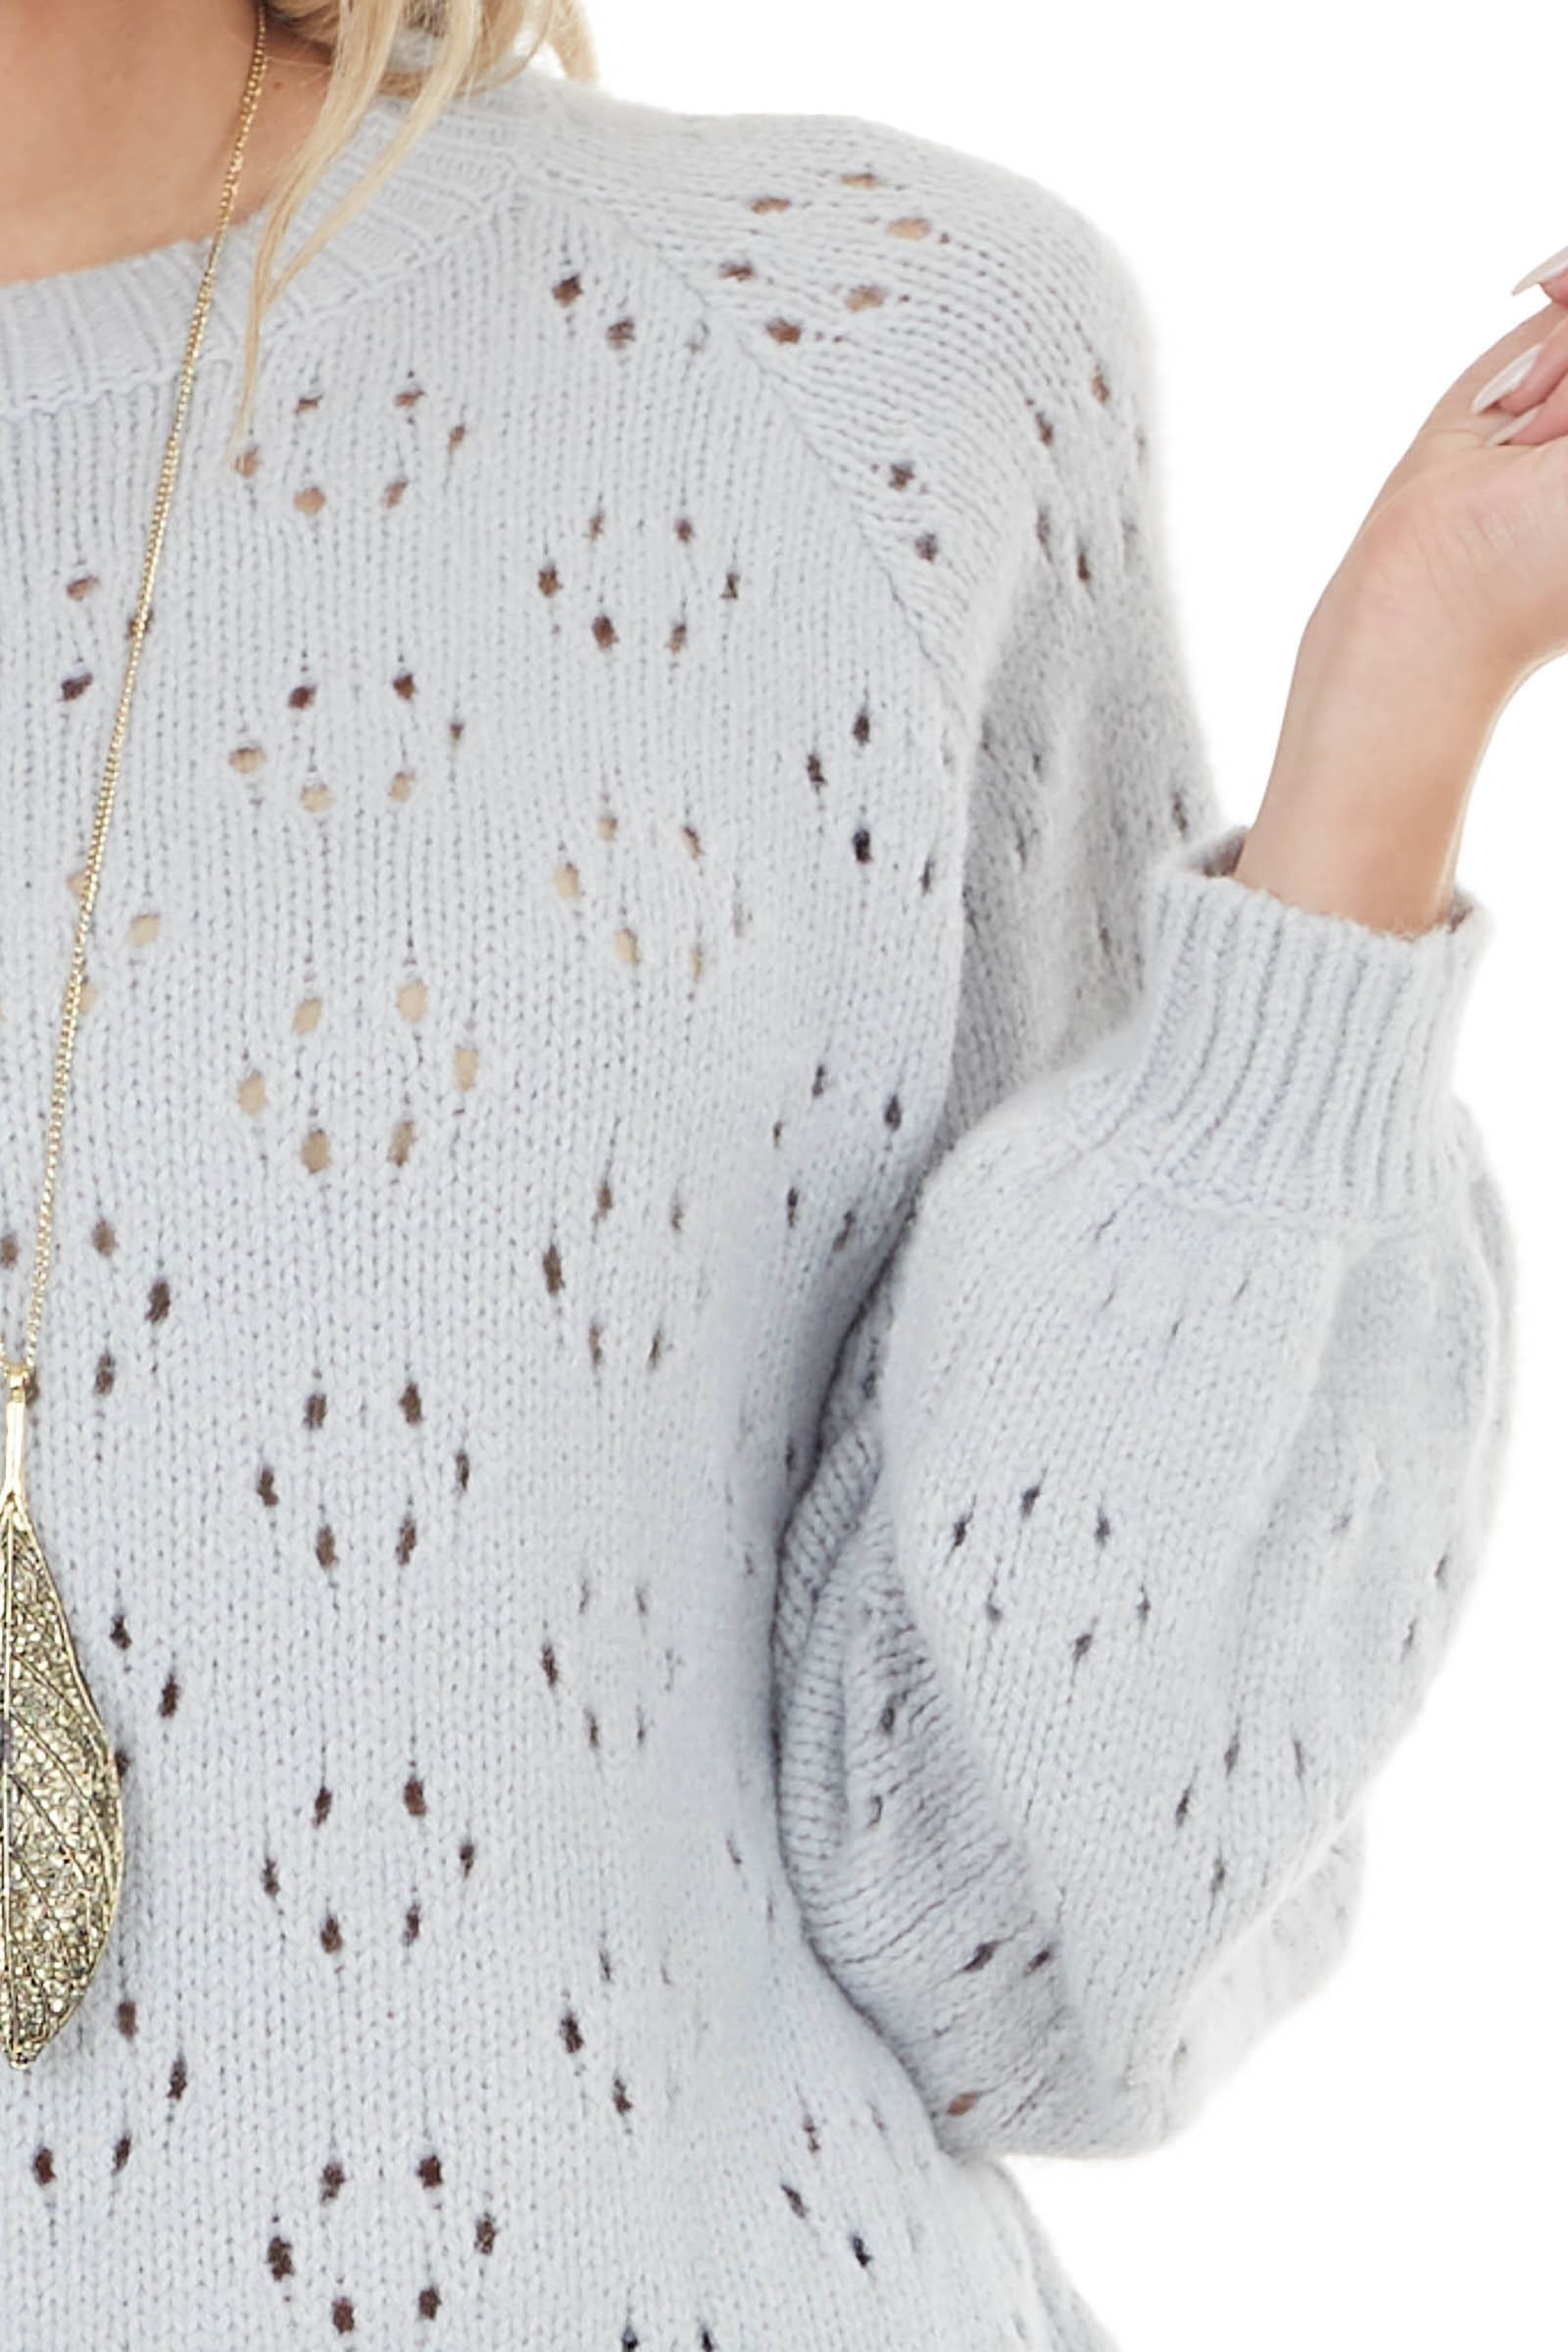 Cloud Grey Soft Bubble Sleeve Sweater with Cutout Details